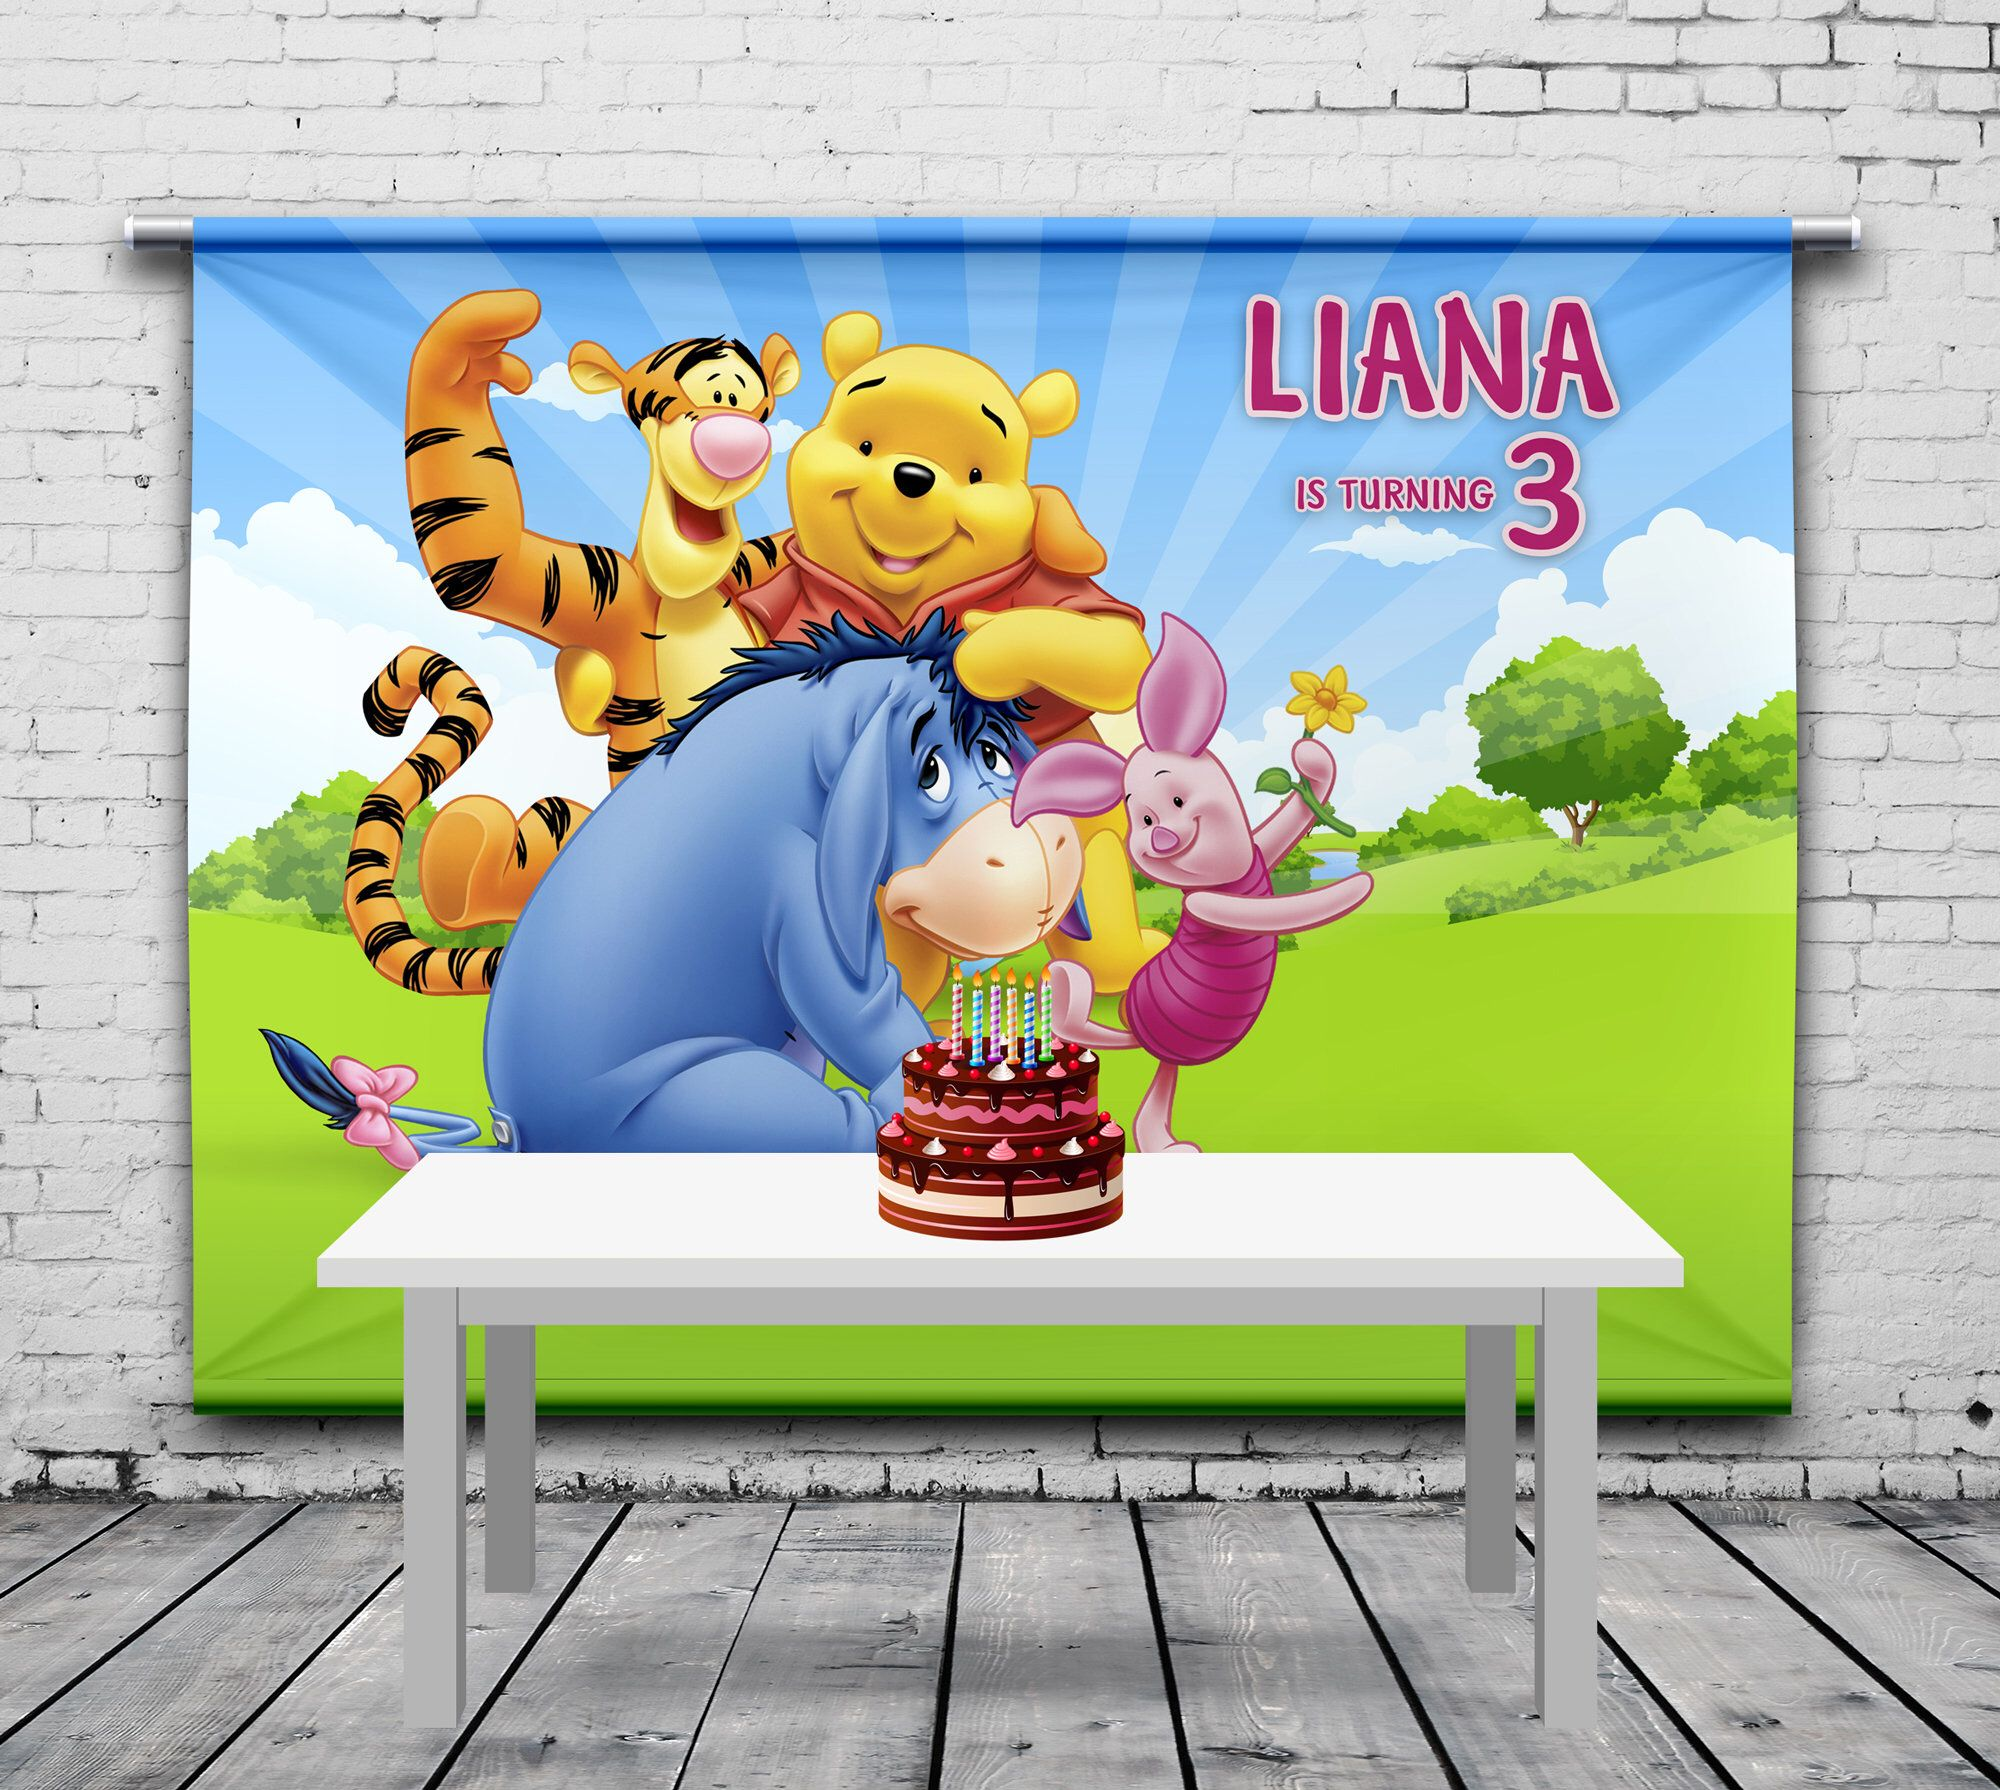 winnie the pooh birthday backdrop, party hr manager resume objective business student template skills for information technology